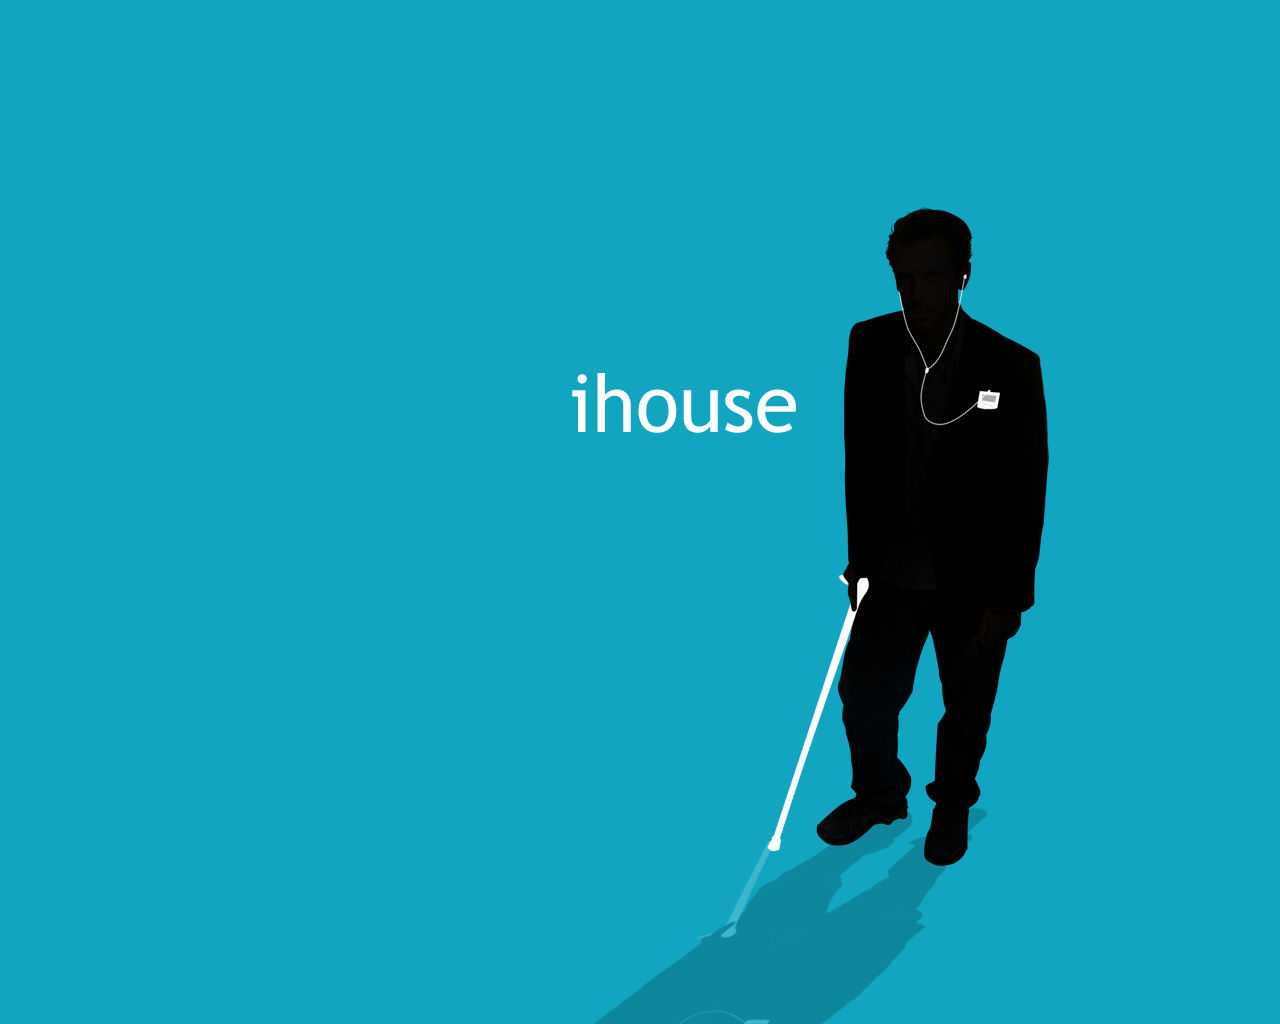 ihouse_wallpaper_by_watafu_dev.jpg